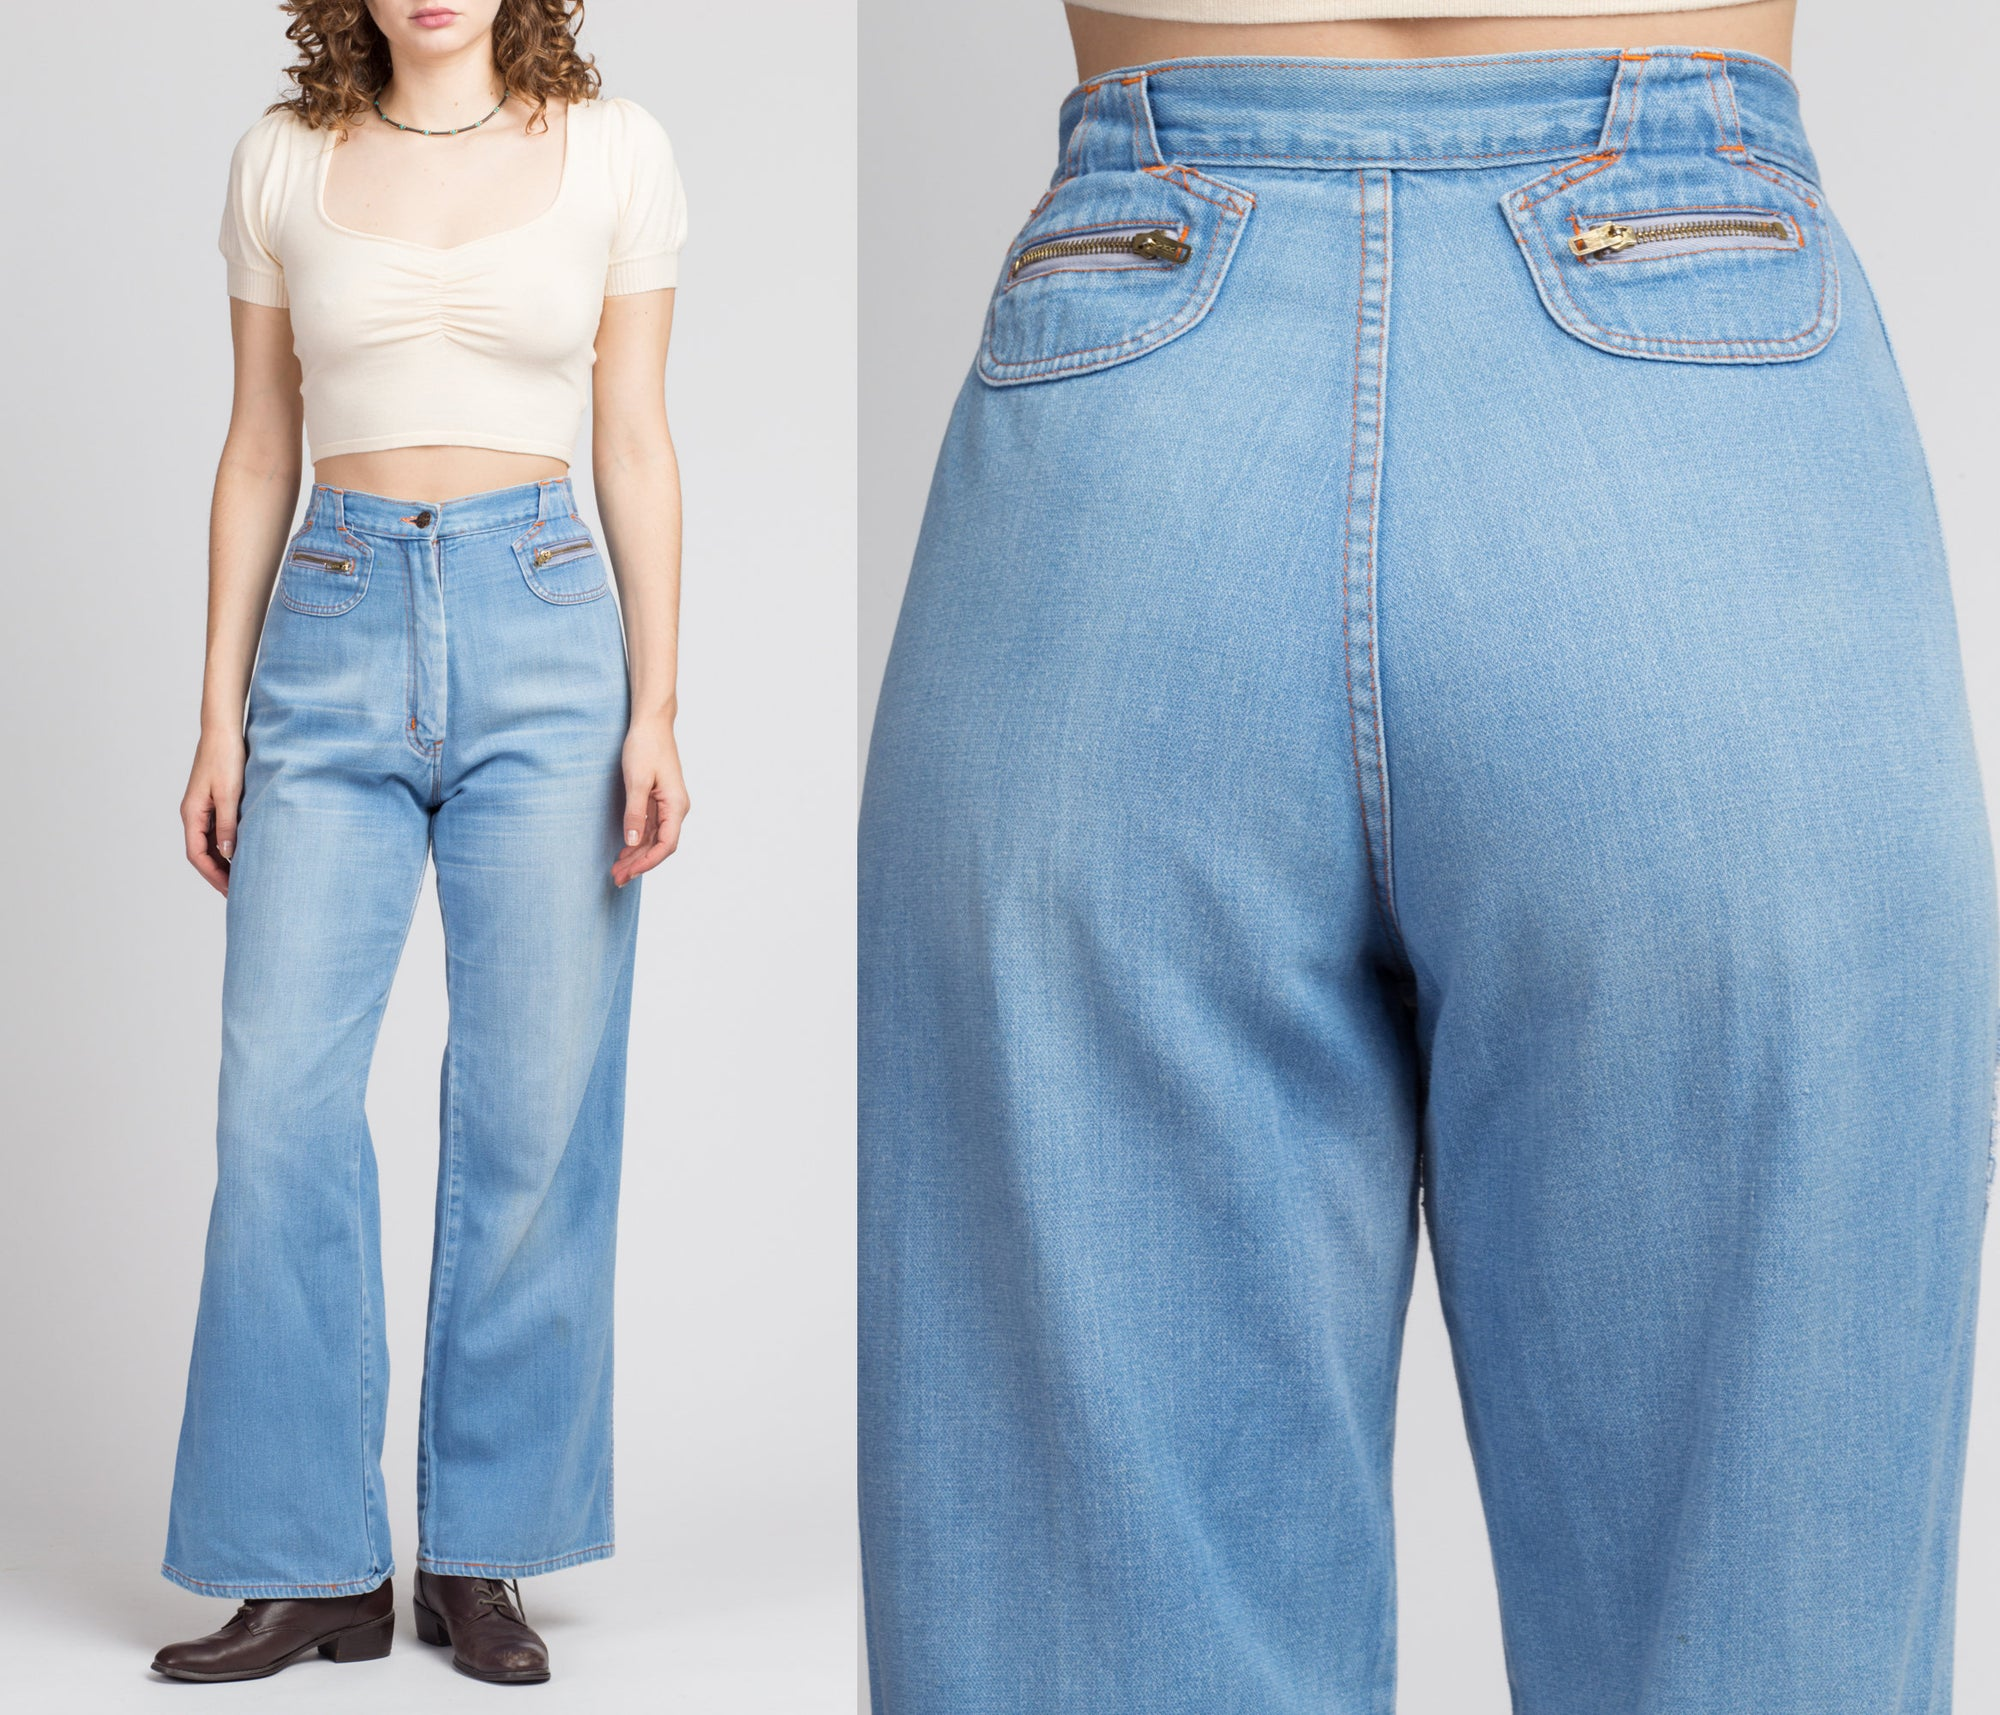 70s High Waist Flared Jeans - Medium, 29""